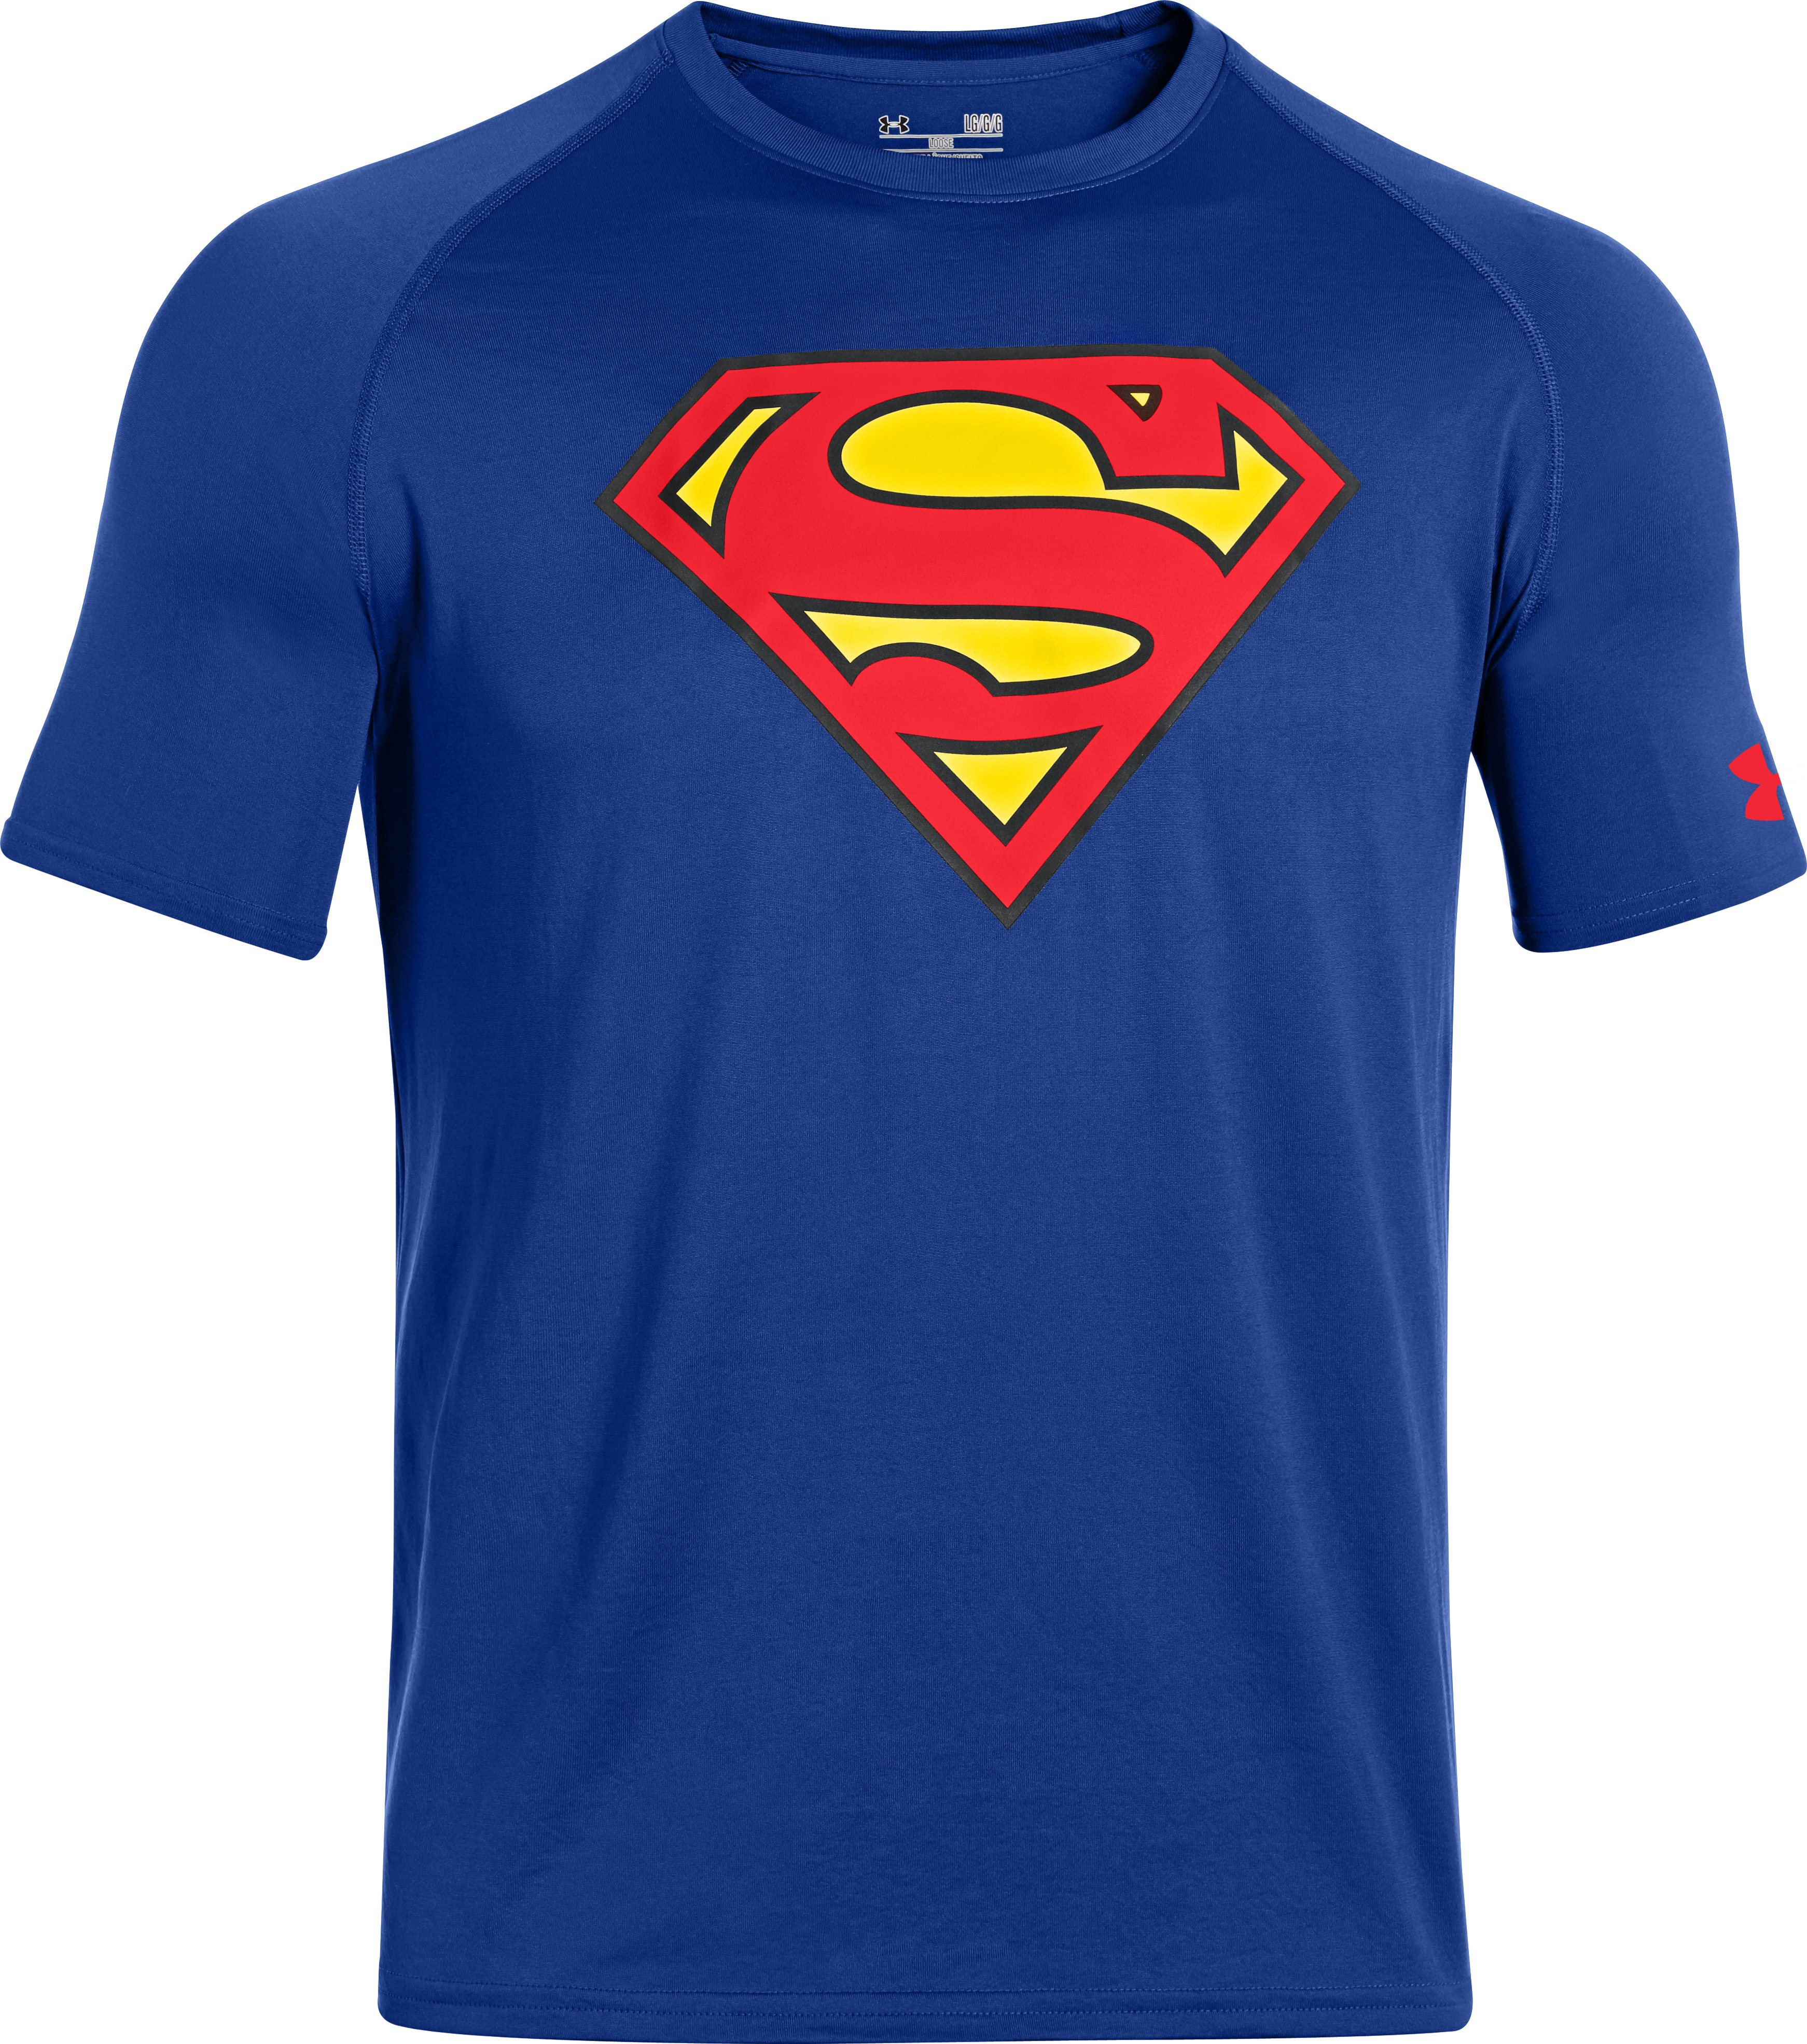 Men's Under Armour® Alter Ego Superman Core T-Shirt, Royal, undefined